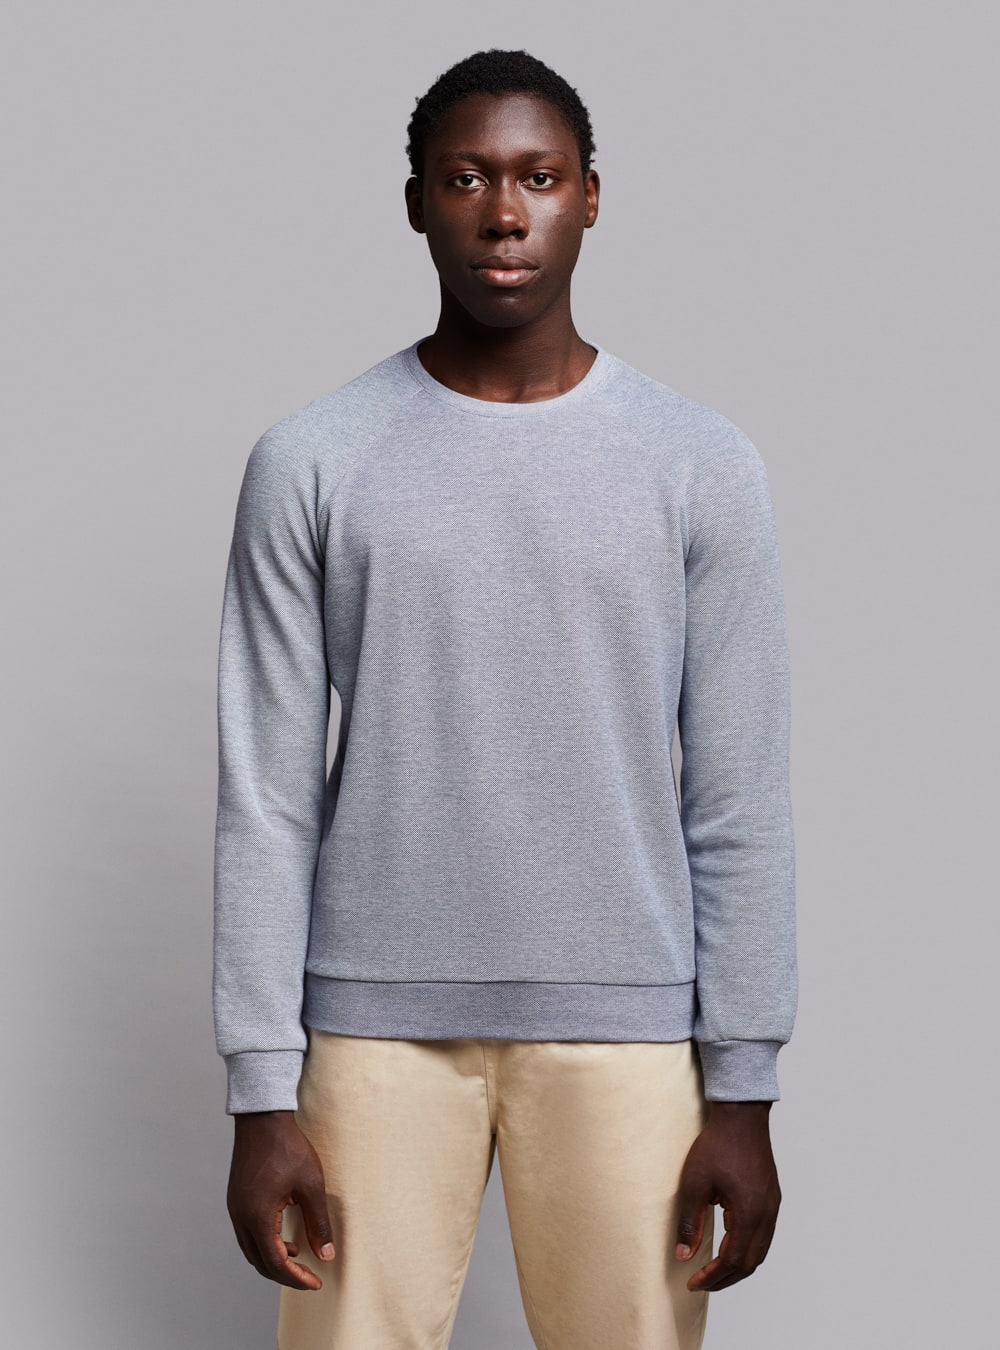 Piqué sweatshirt (blue melange) in organic cotton, made in Portugal by wetheknot.